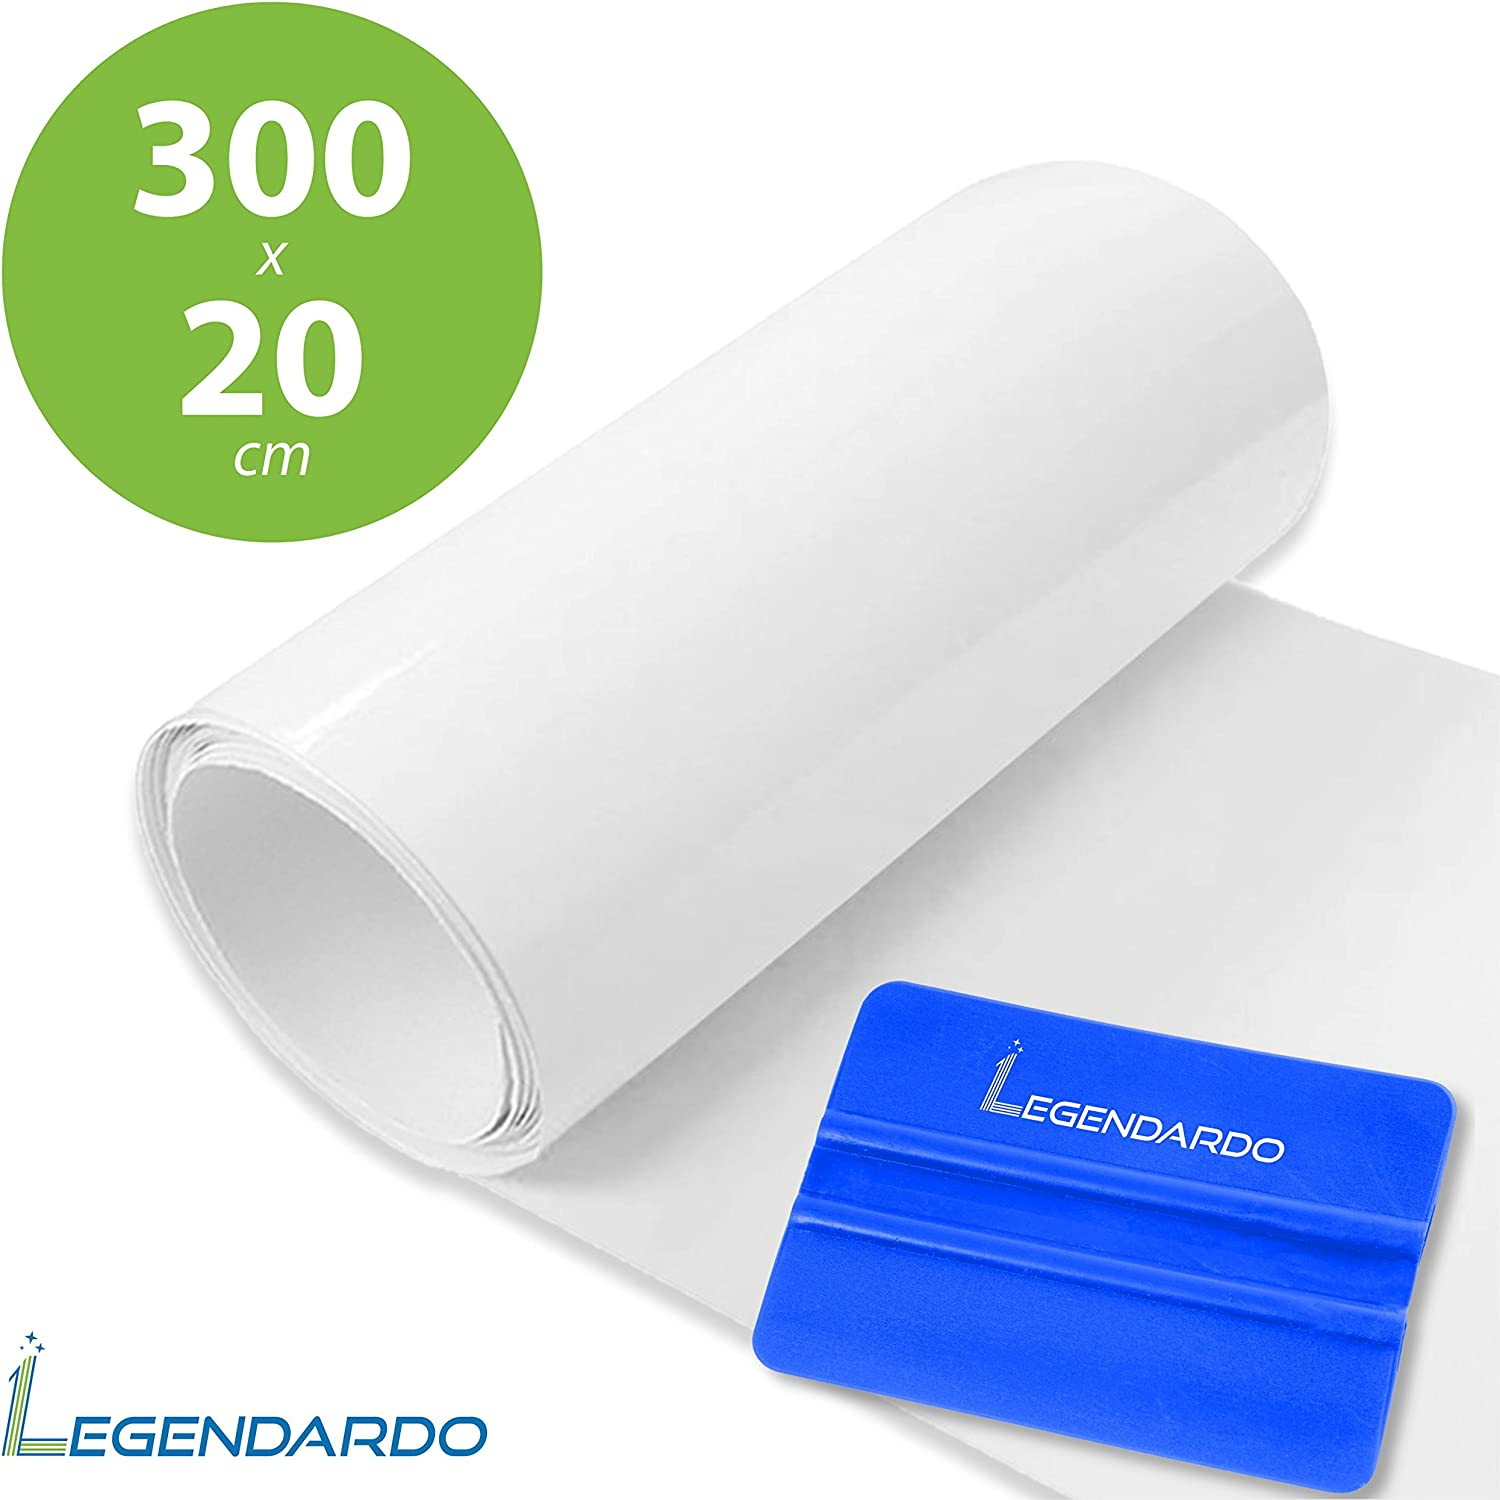 Legendardo Paint Protection Film Use As Car Film Bicycle Film Motorcycle Film As Stone Guard Protection Bumper Protection Frame Protection Self Adhesive Transparent Protective Film 20 X 300 Cm Auto